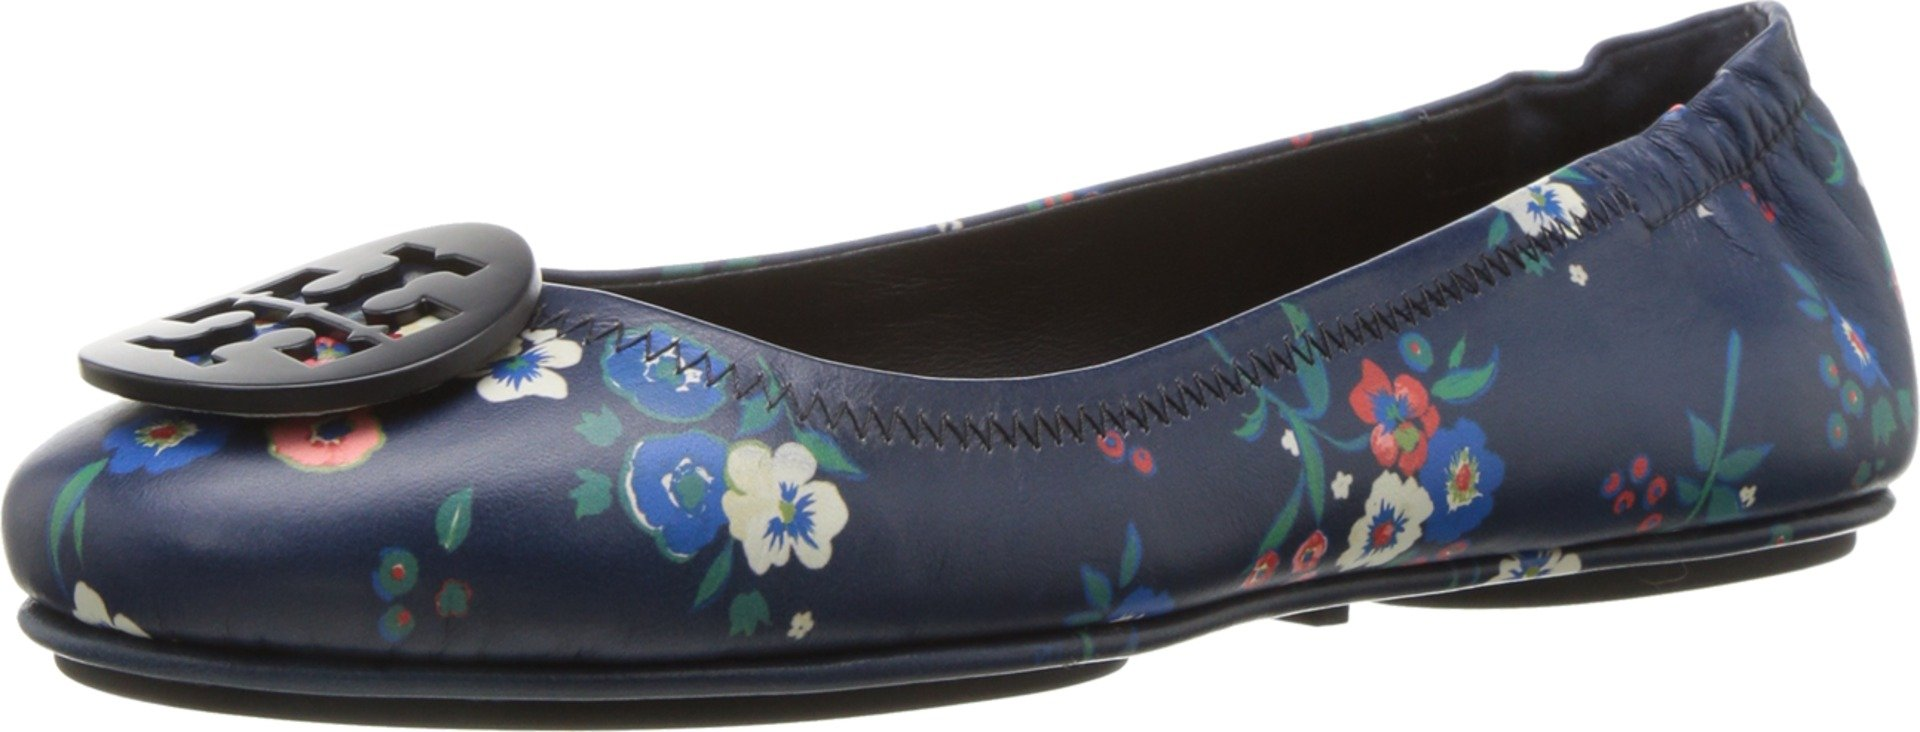 Tory Burch Minnie Travel Floral Print Lether Ballet Flat Size 8 by Tory Burch (Image #1)